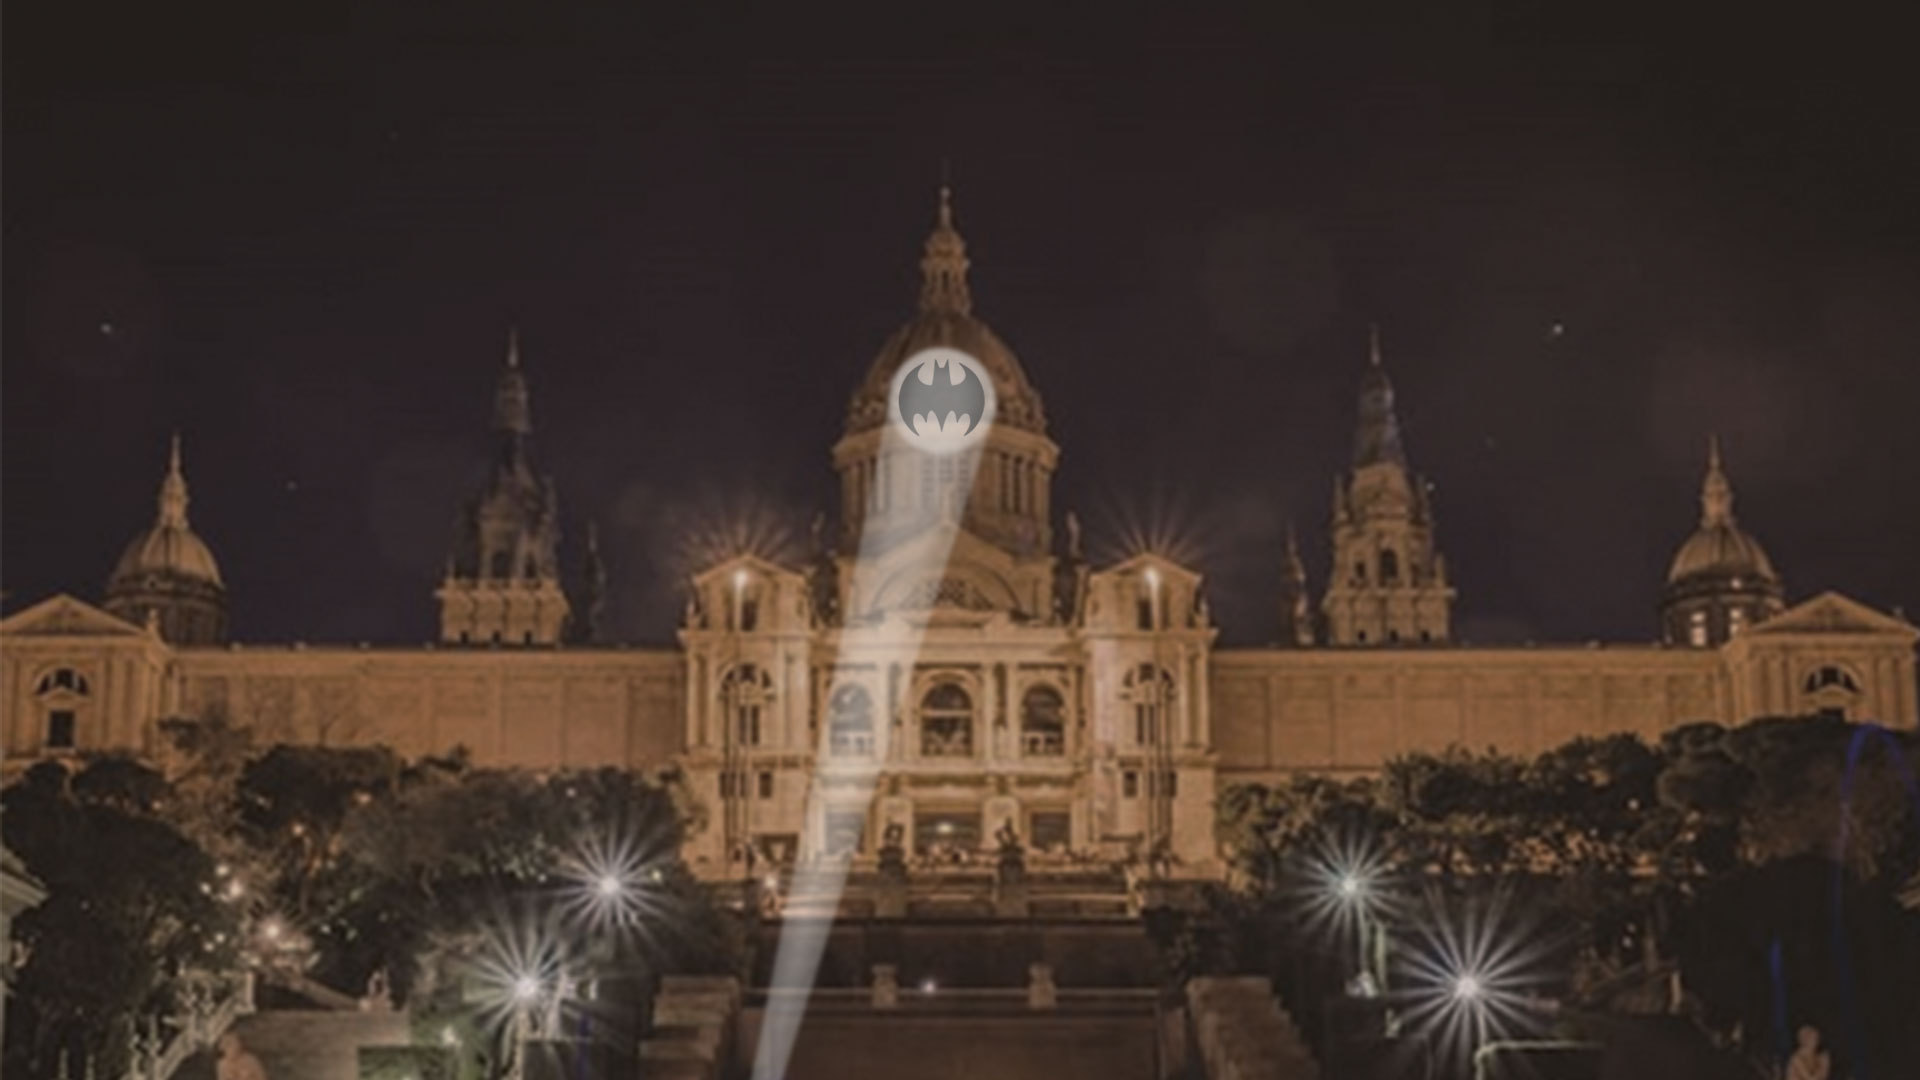 Rendering of what the Bat-Signal will look like on Barcelona's Museu Nacional d'Art de Catalunya on 21st September 2019 at 8.00pm local time. Photo: Business Wire